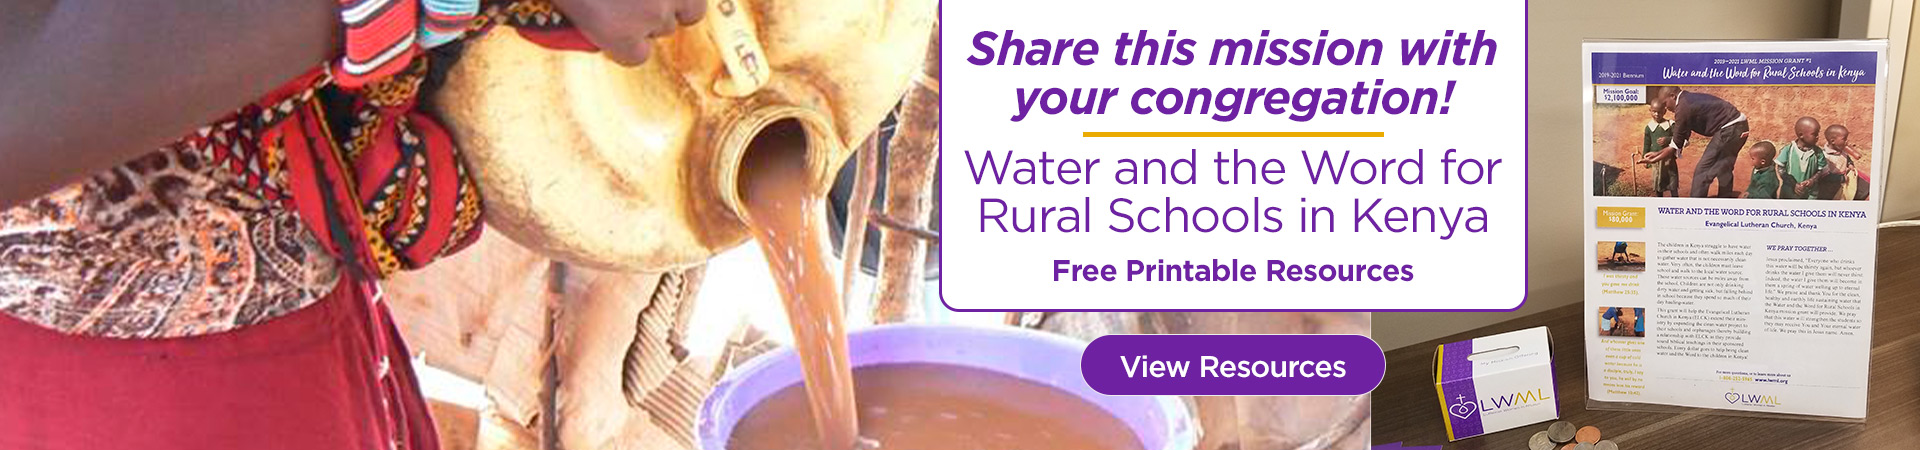 Share this mission with your congregation! Water and the Word for Rural Schools in Kenya. Free Printable Resources.